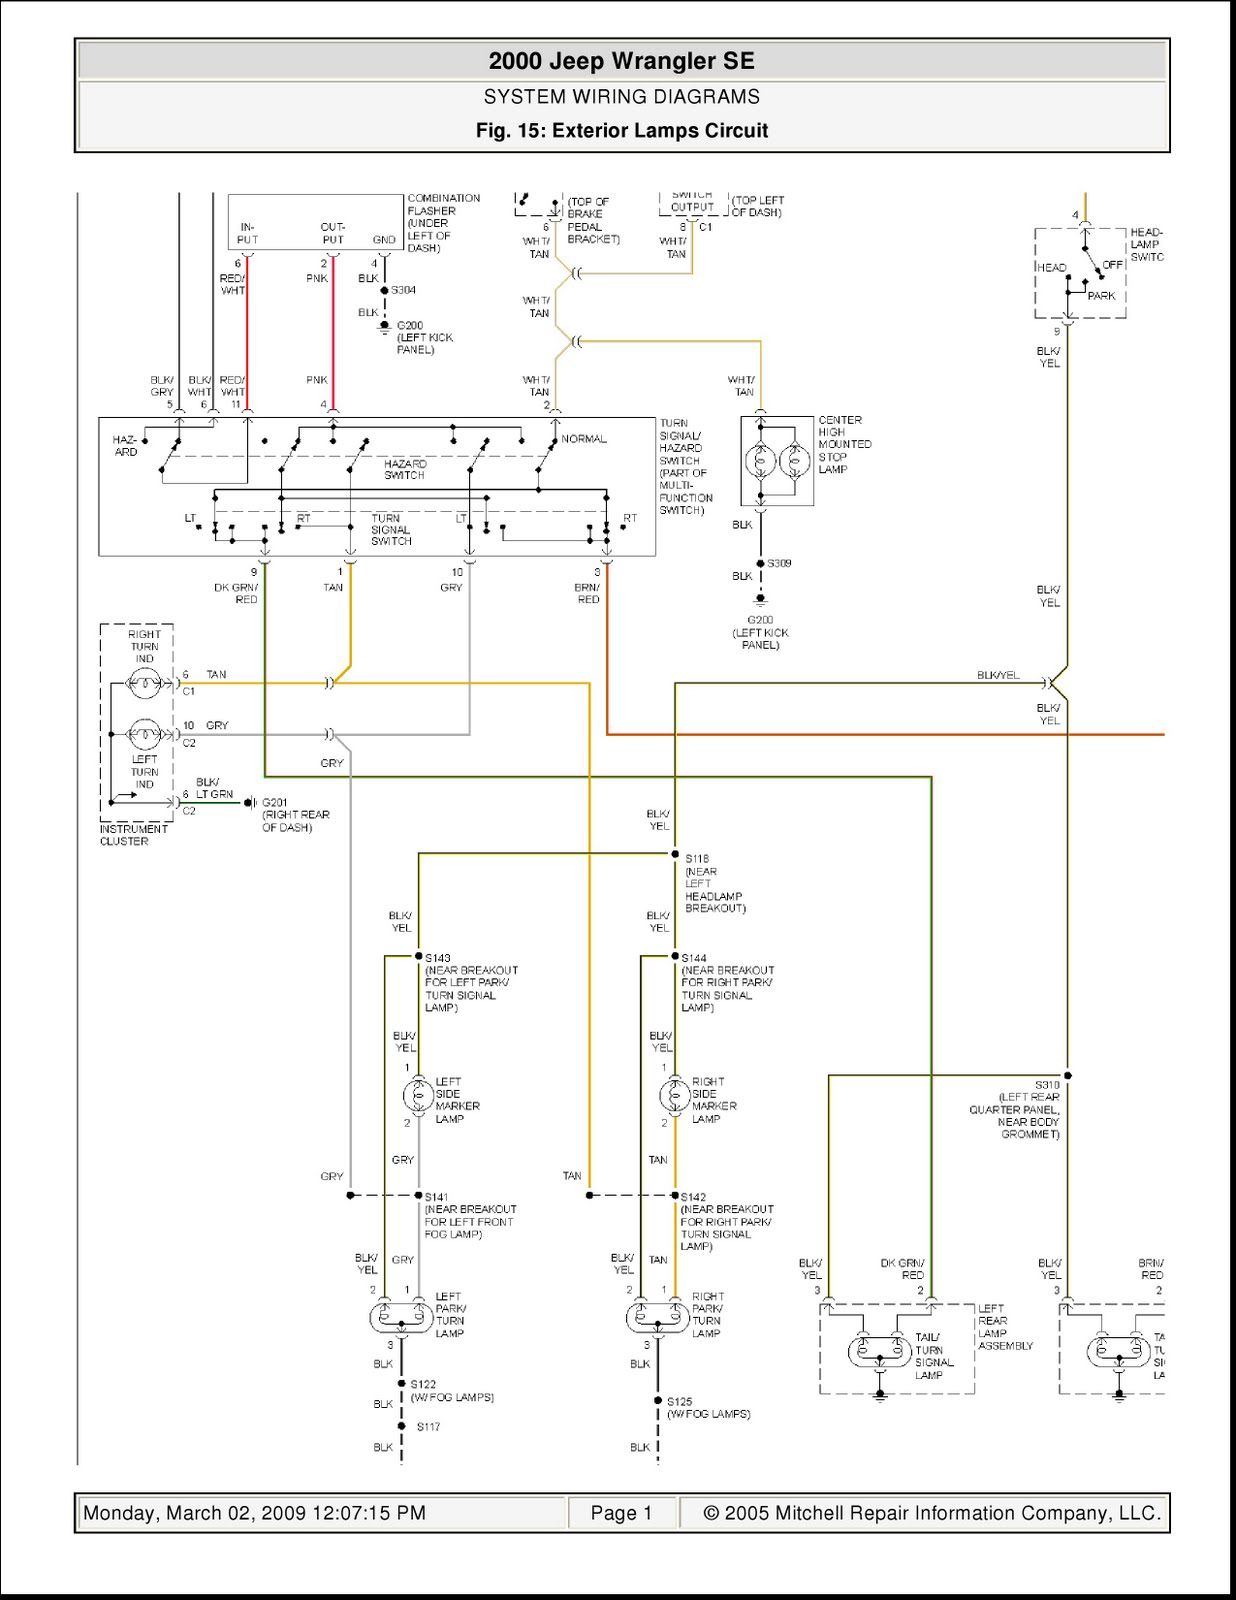 2002 jeep wrangler headlight wiring diagram 2000 jeep wrangler se system wiring diagrams exterior ... 2008 jeep wrangler headlight wiring